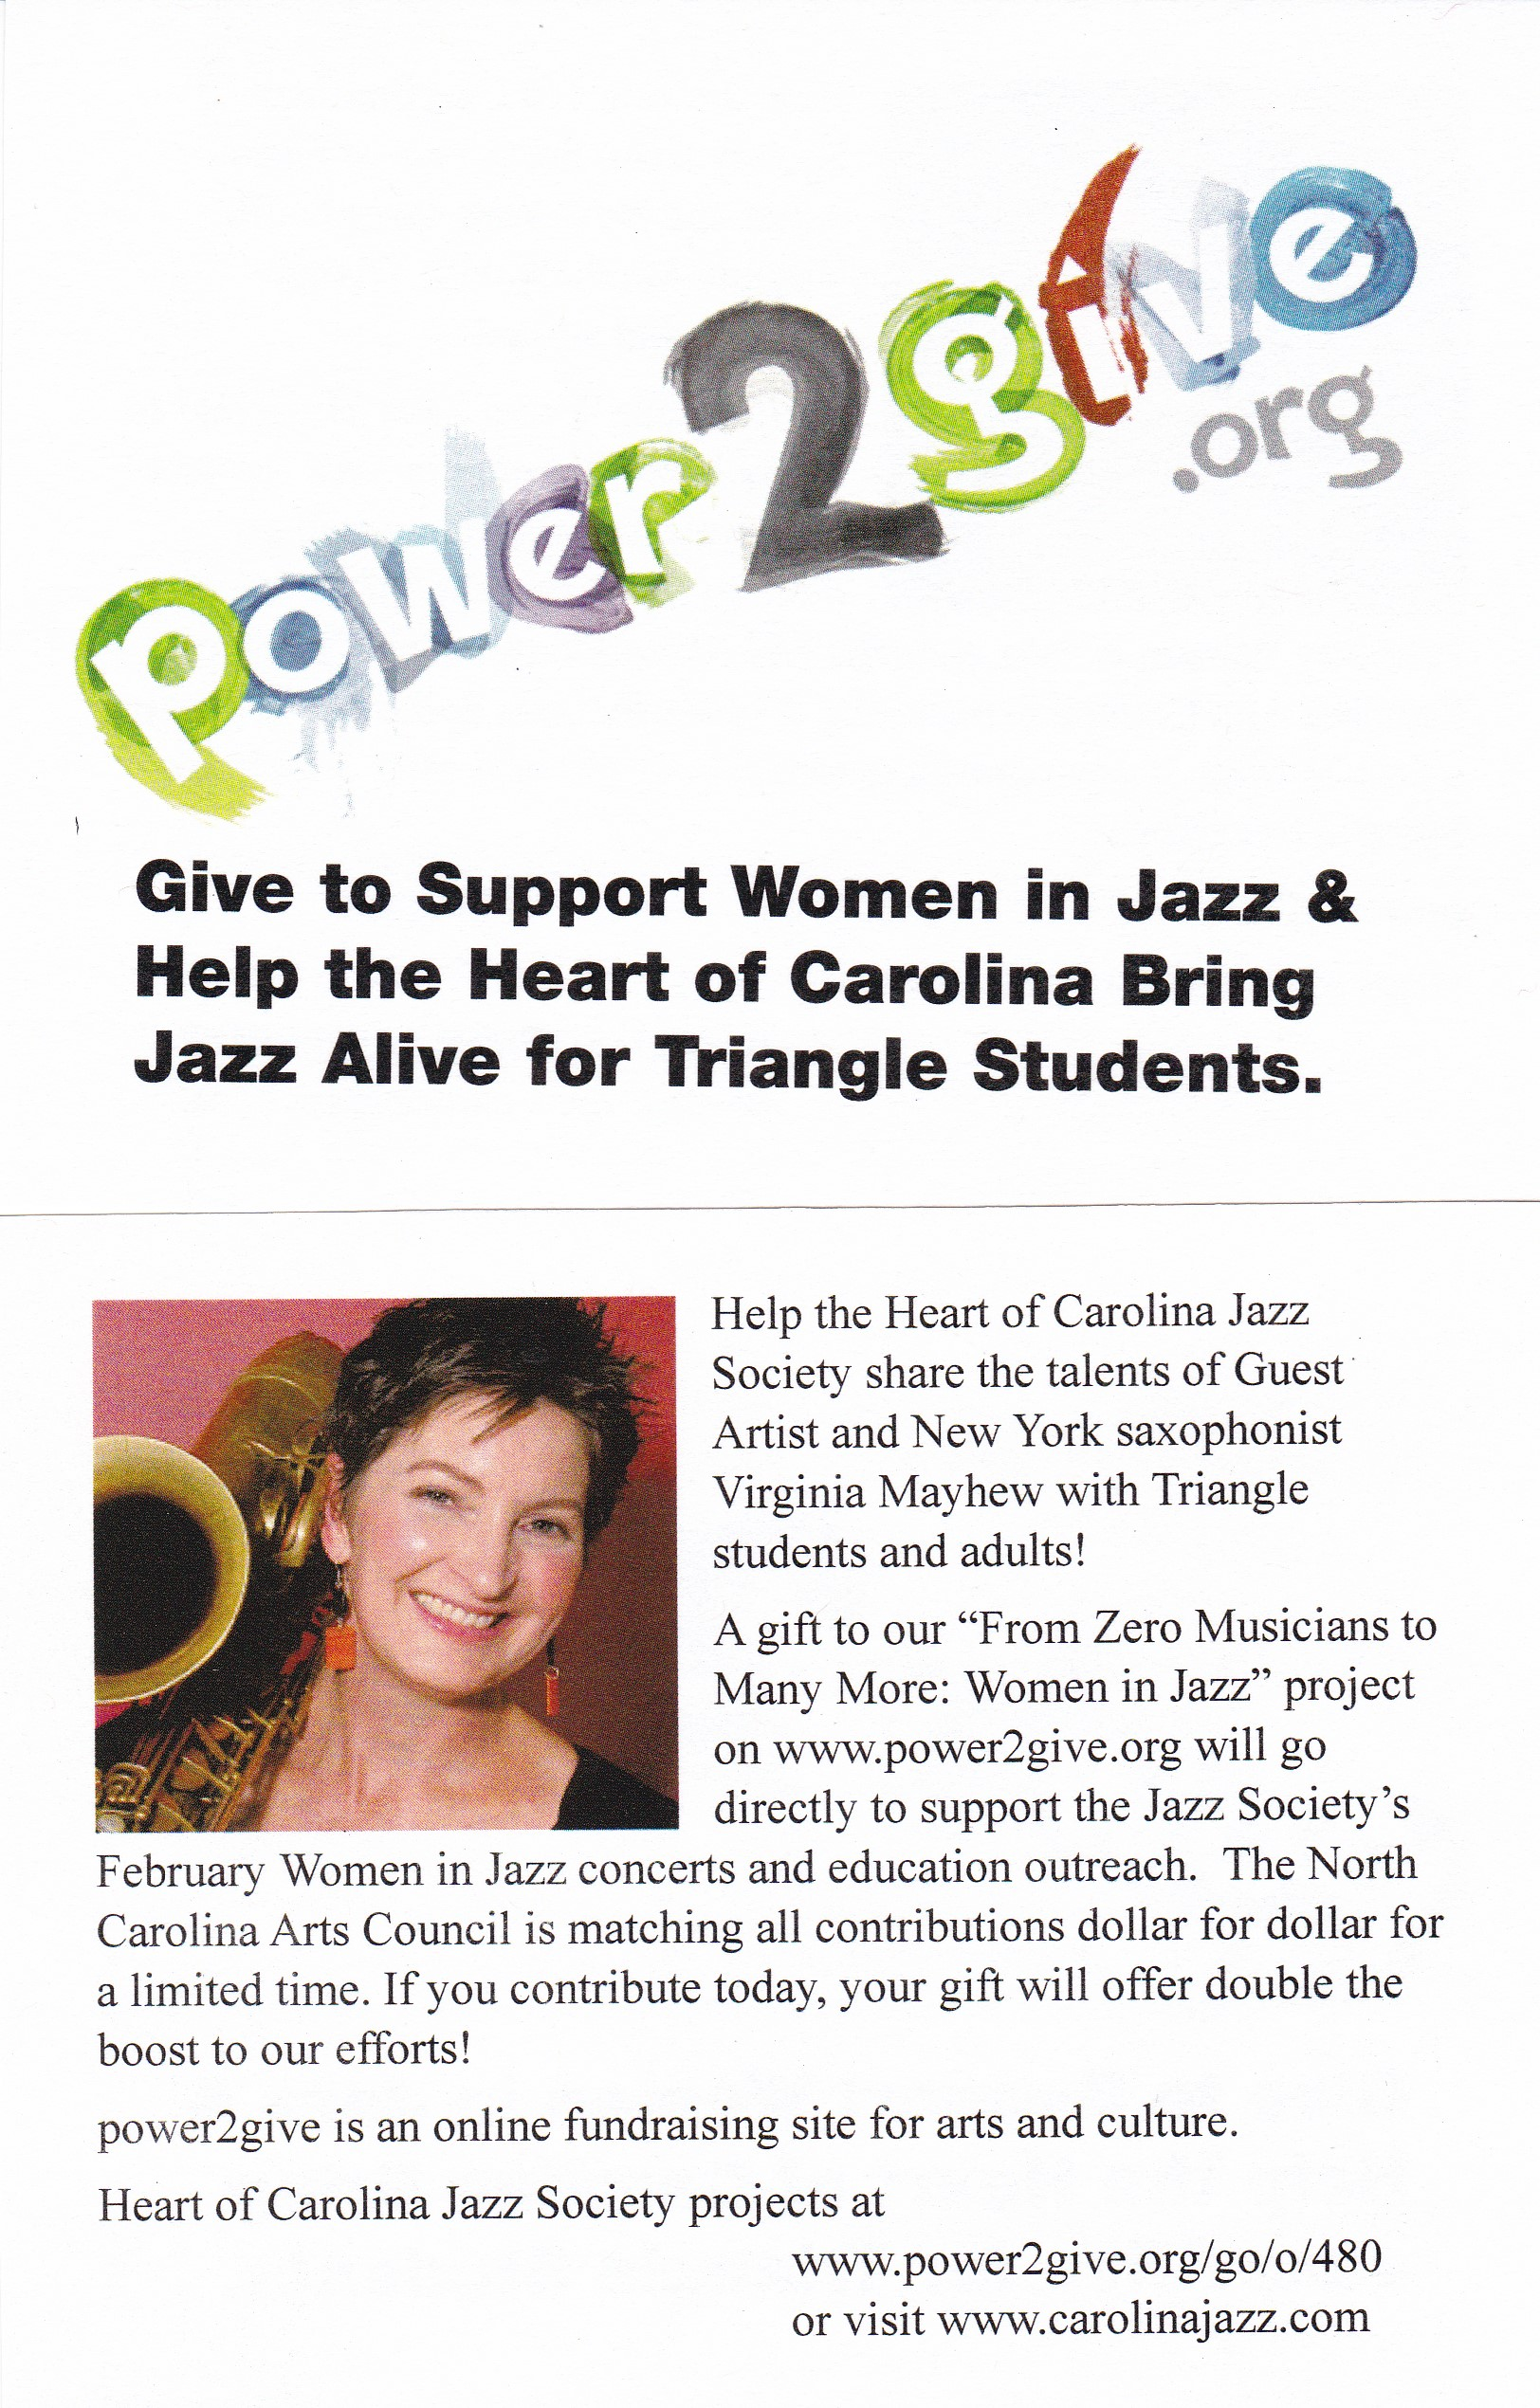 HOCJO-Guest-artist-Virginia-Mayhew-power-to-give-postcard